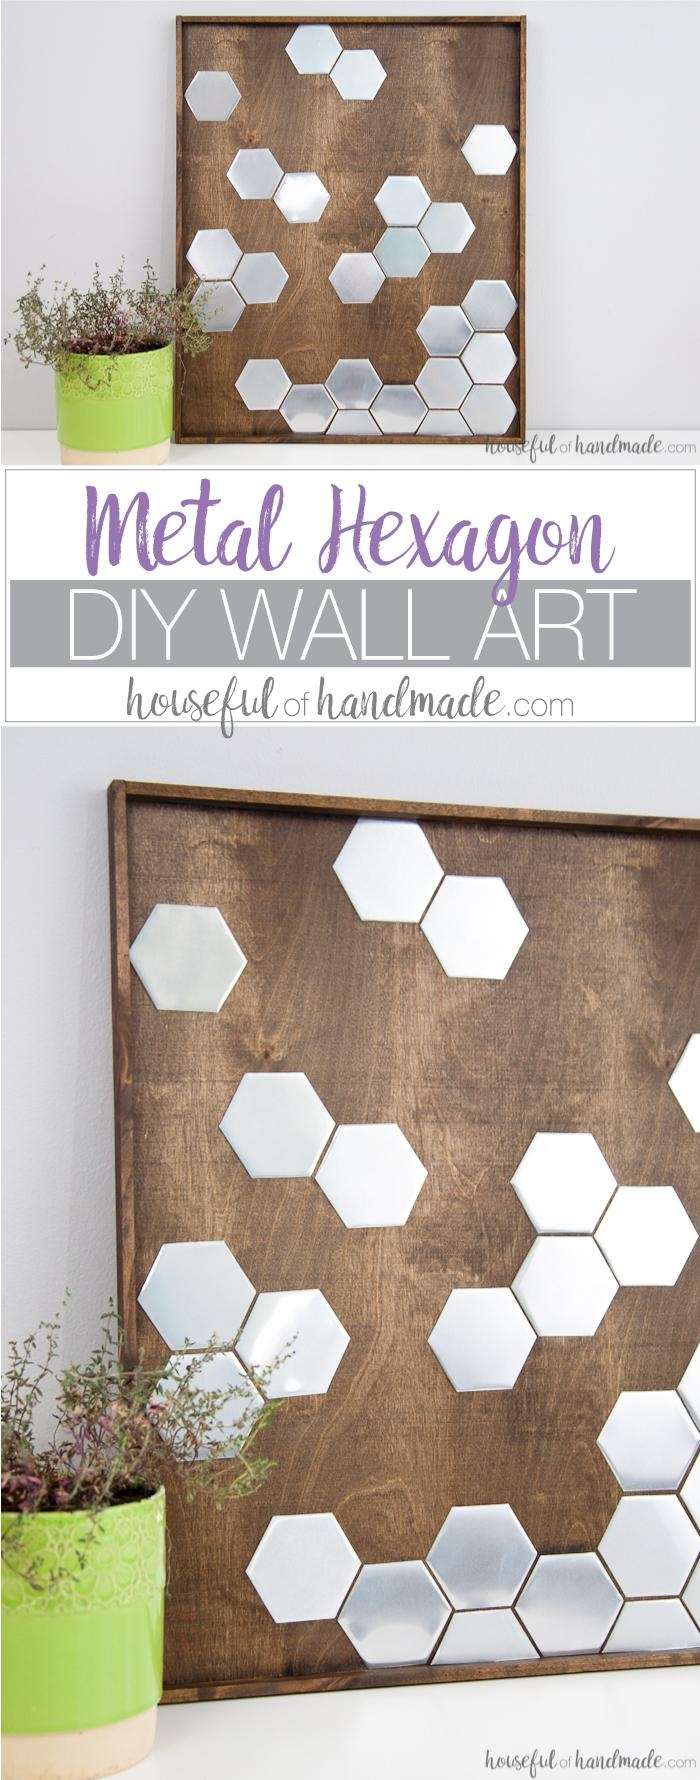 Diy Metal Hexagon Wall Art – A Houseful Of Handmade Inside Diy Metal Wall Art (Image 2 of 20)